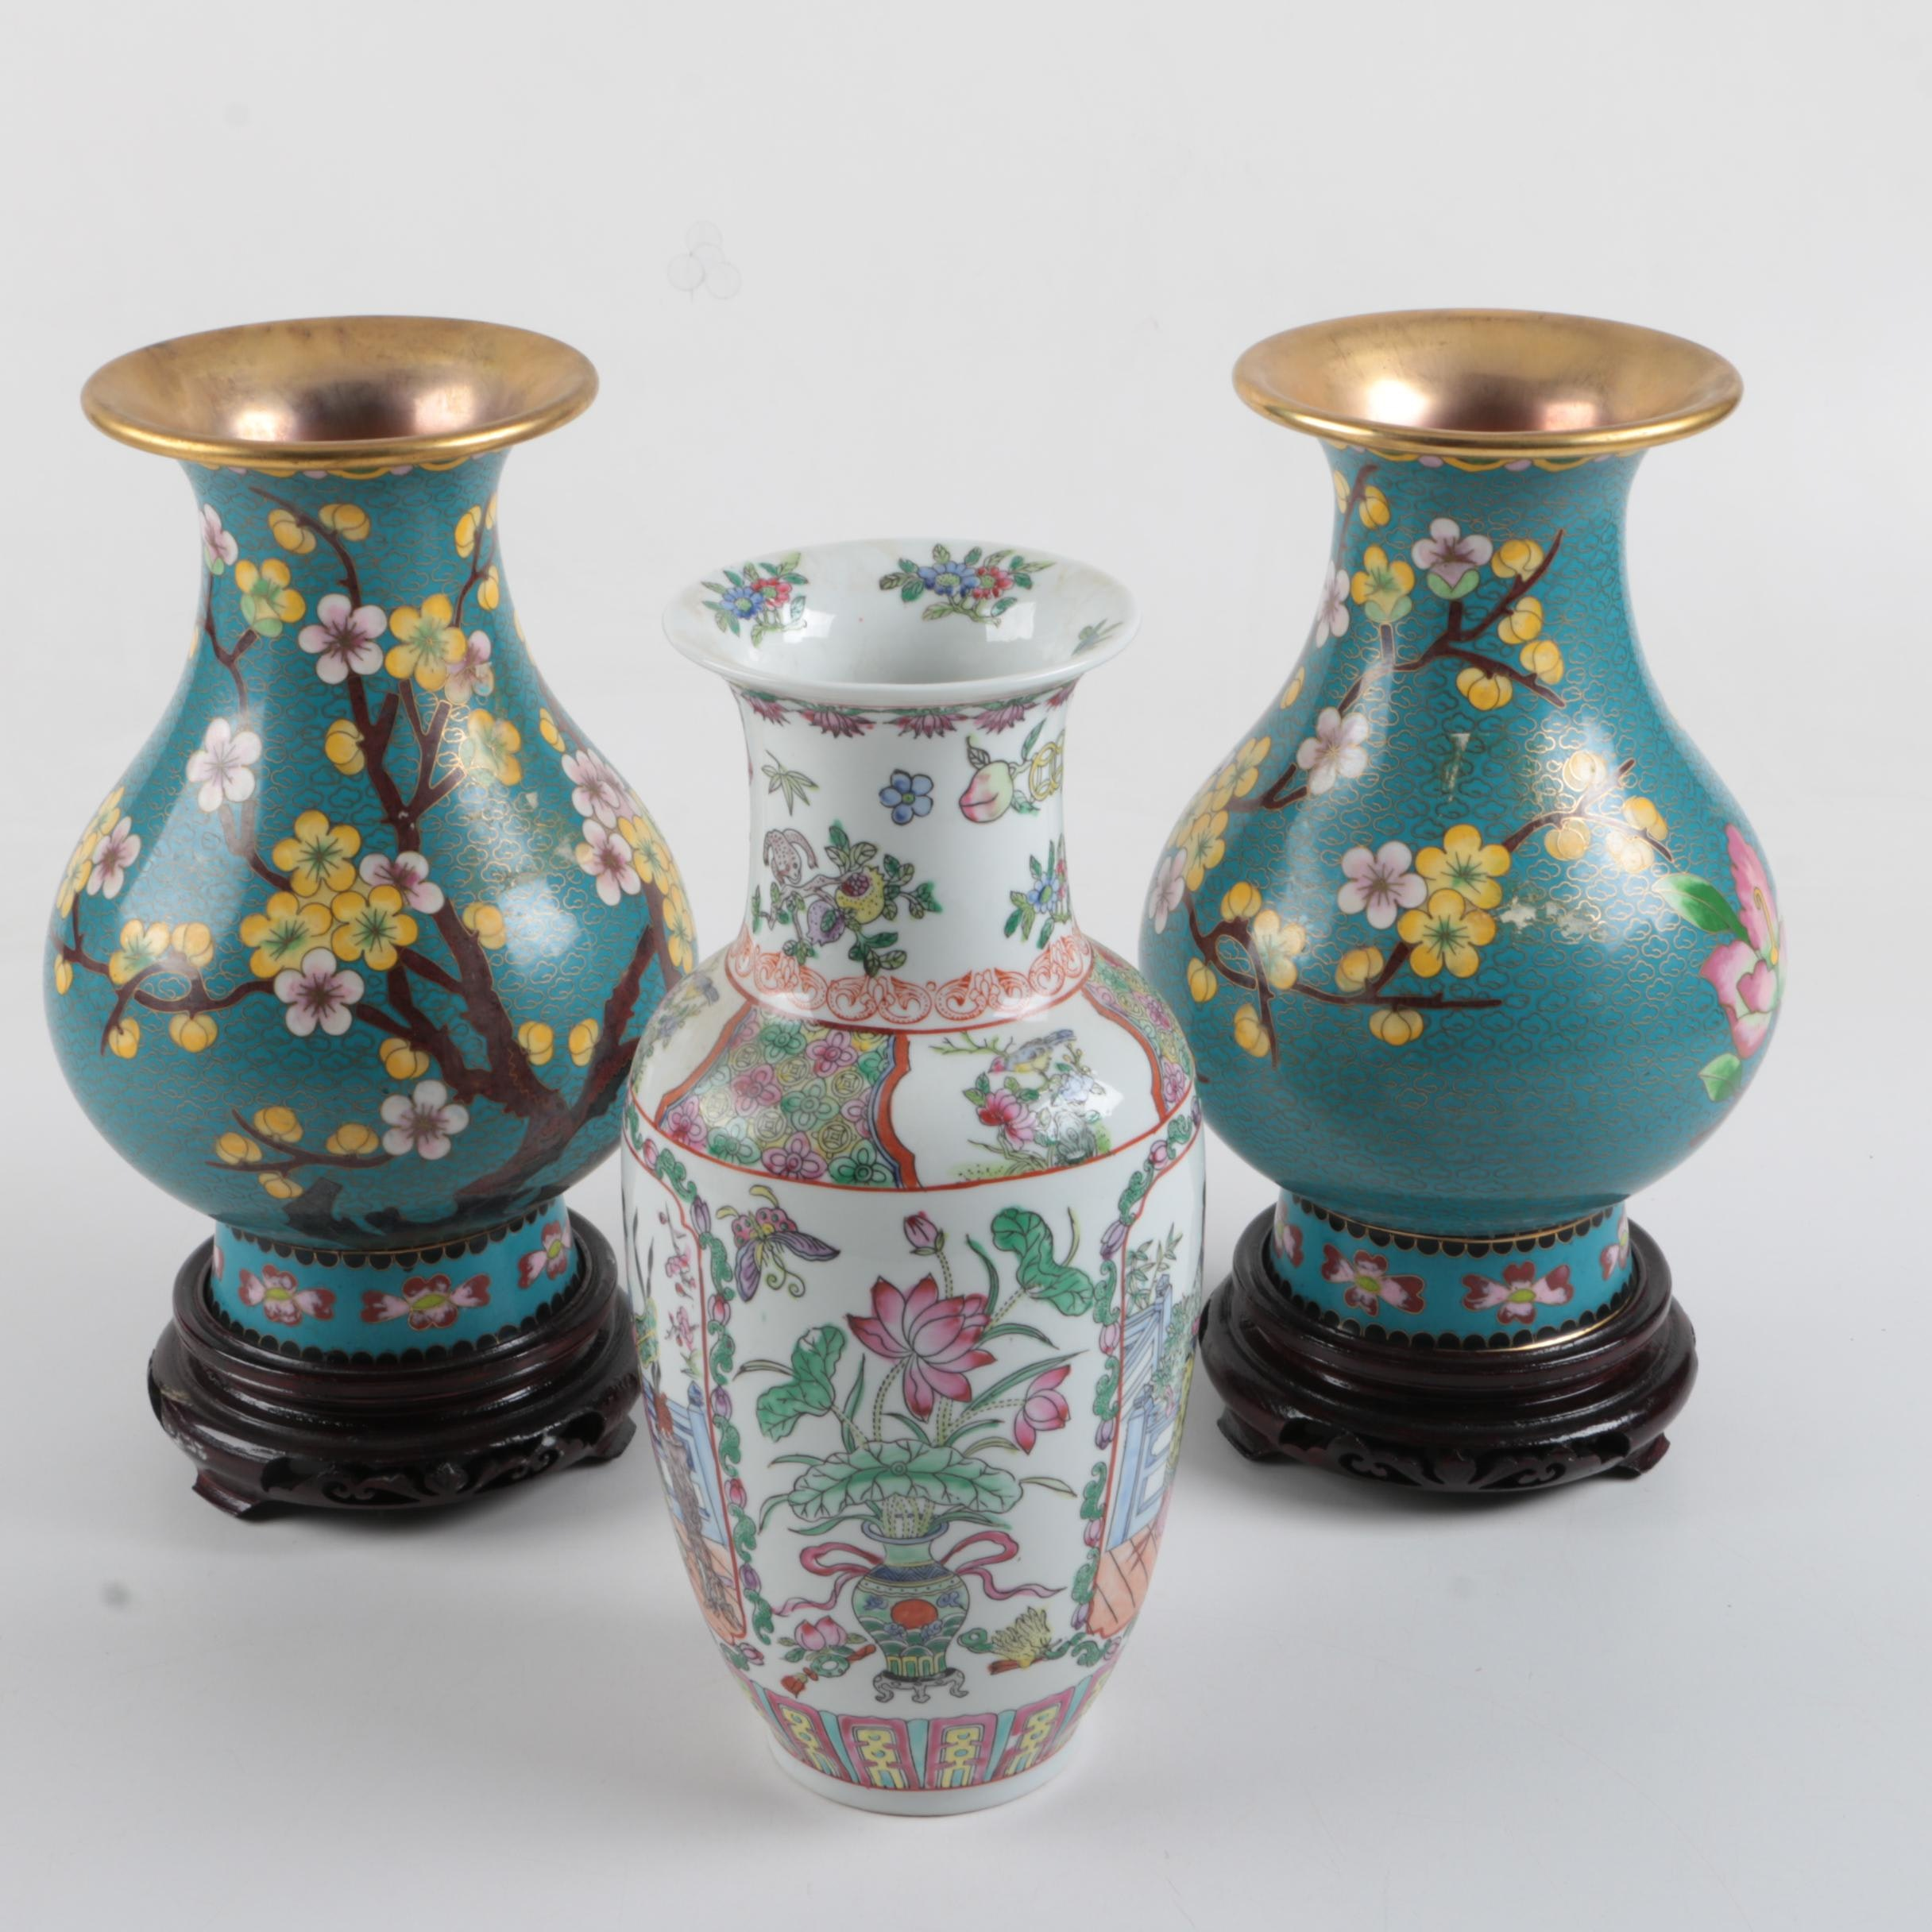 Pair of Cloisonné Vases and a Painted Figural Baluster Vase